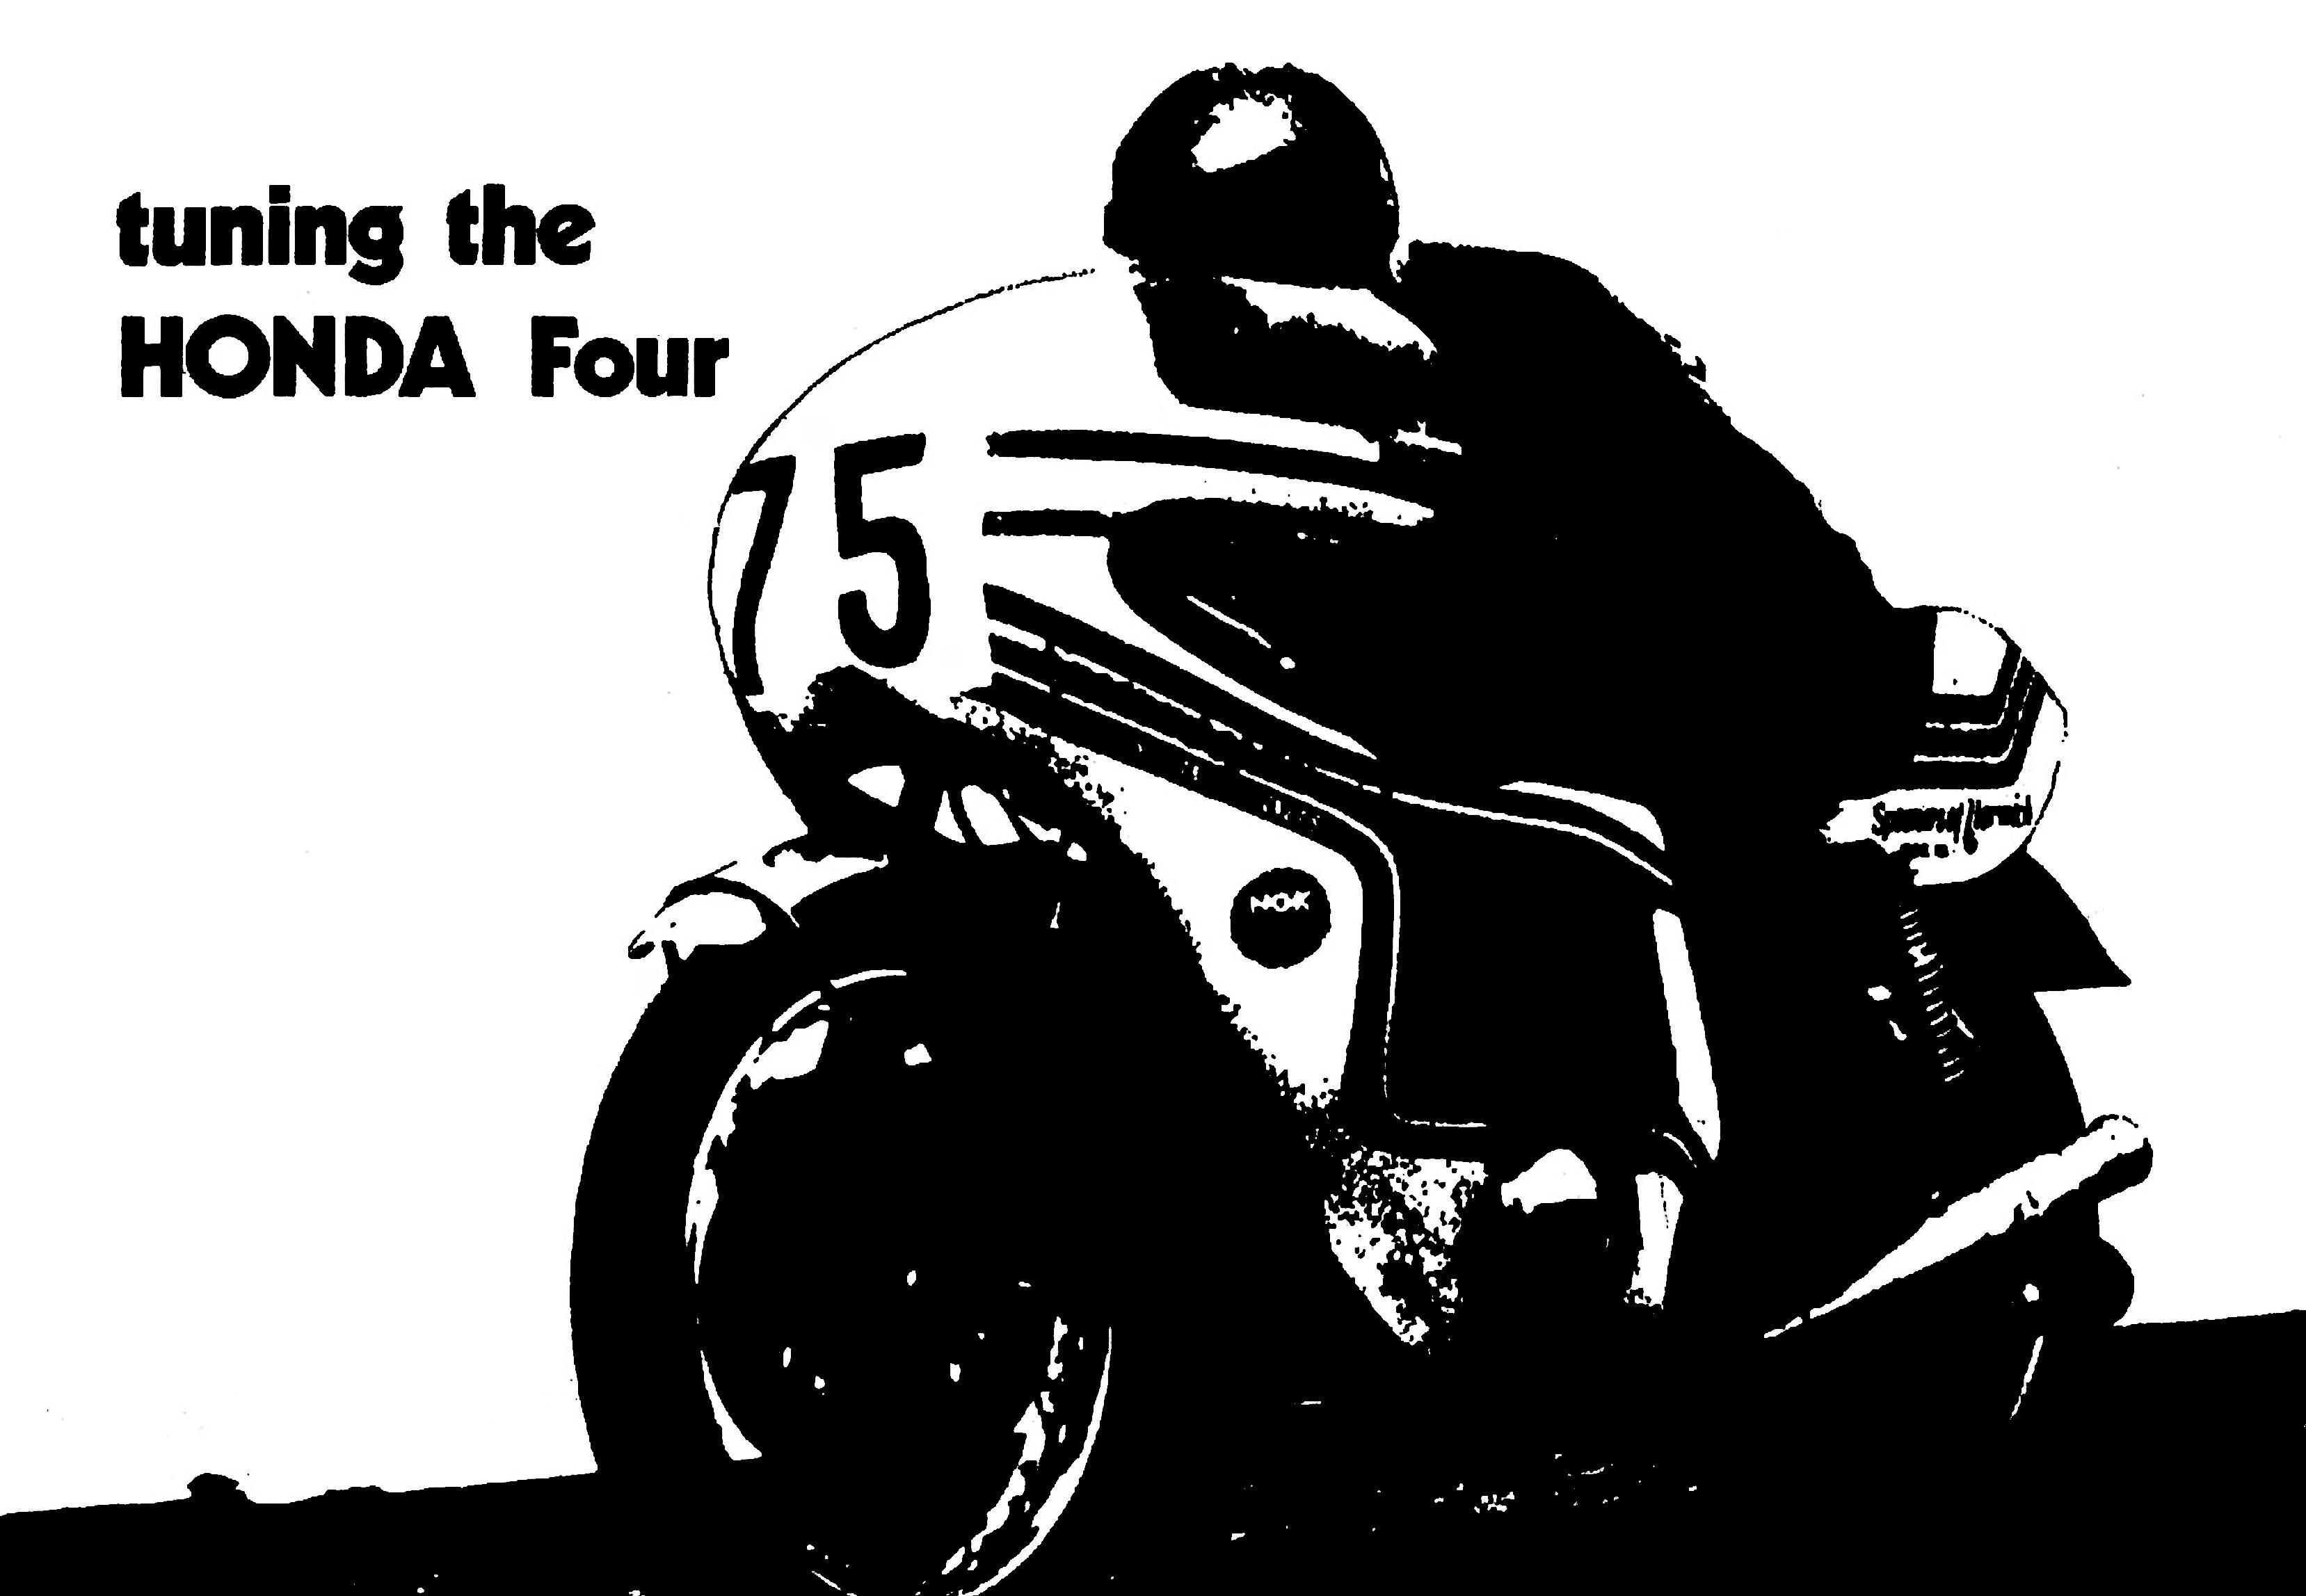 Honda Four Tuning Manual for Honda CB750F